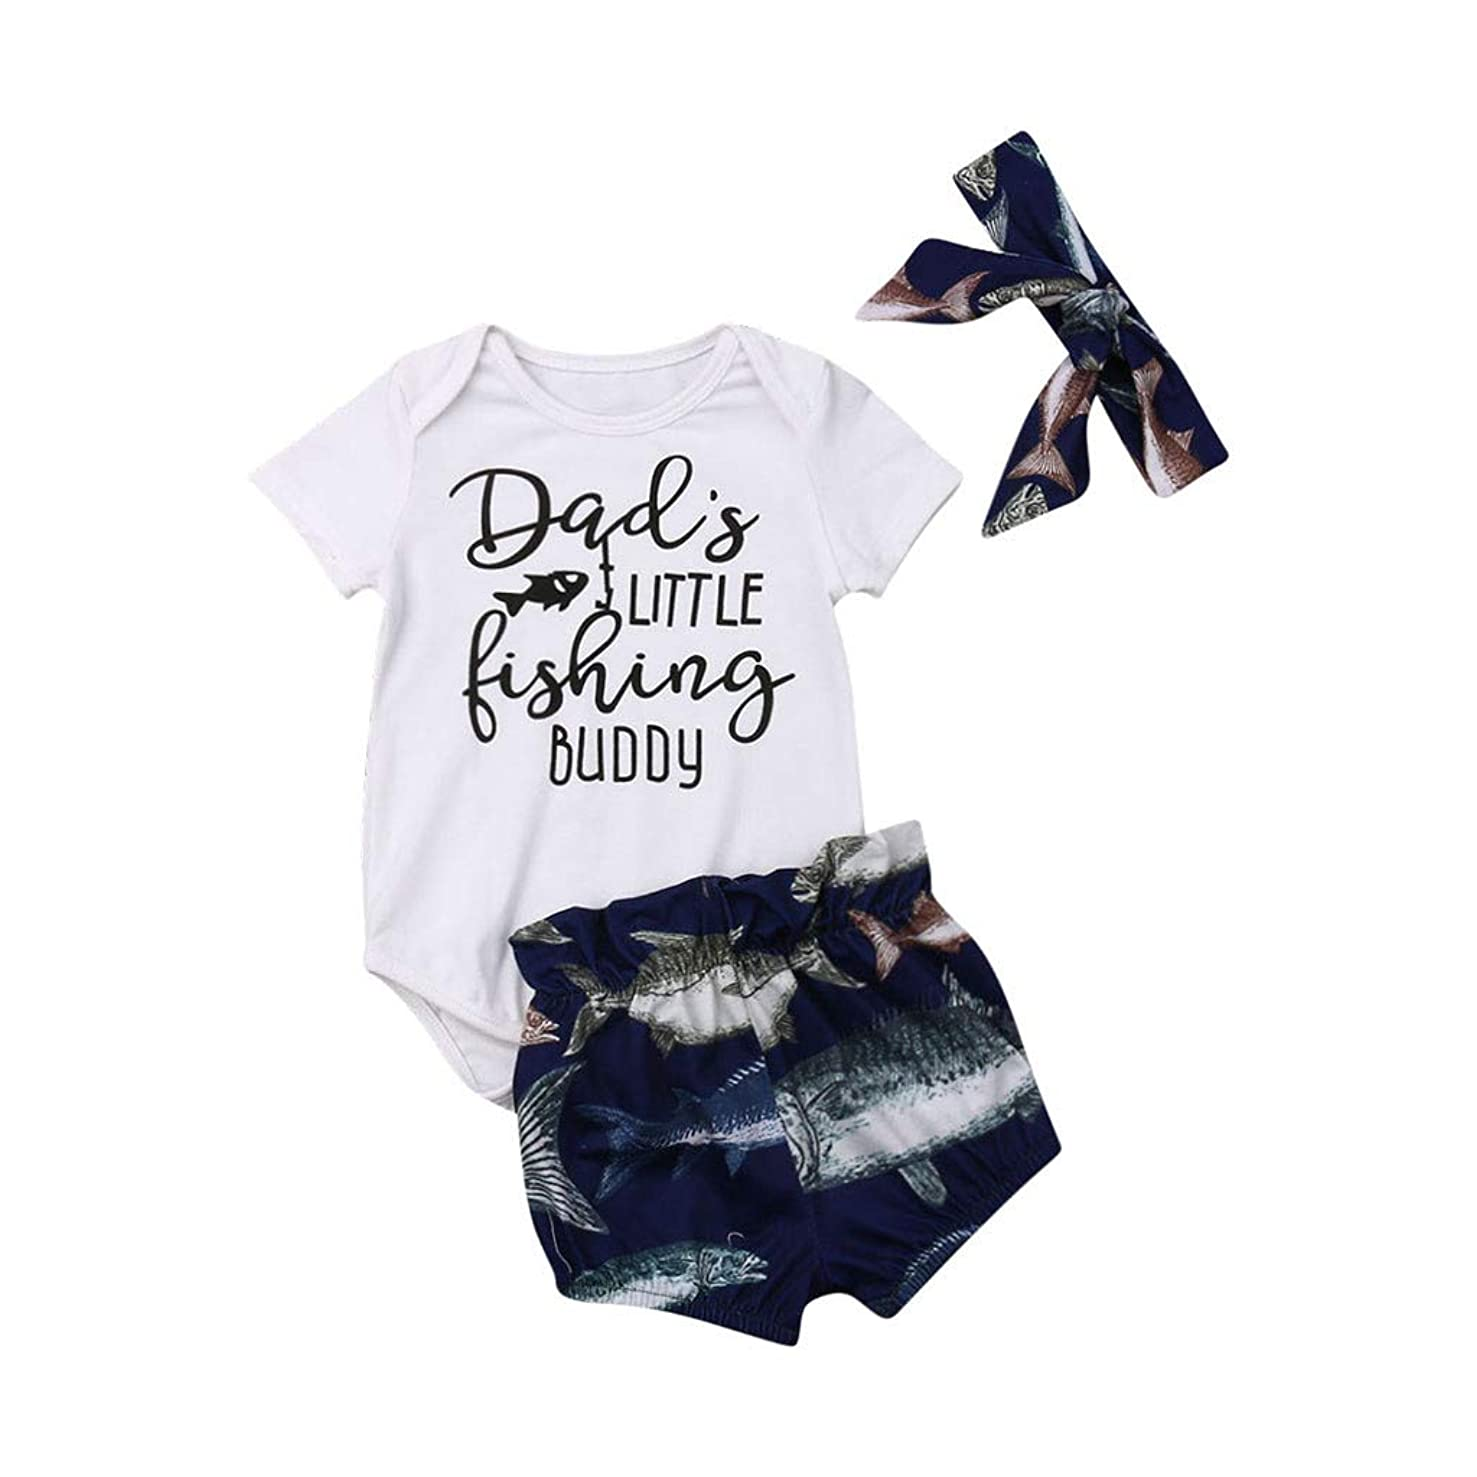 LiLiMeng Infant Baby Dads Little Fishing Buddy Letter Romper Tops Shorts Outfits Set